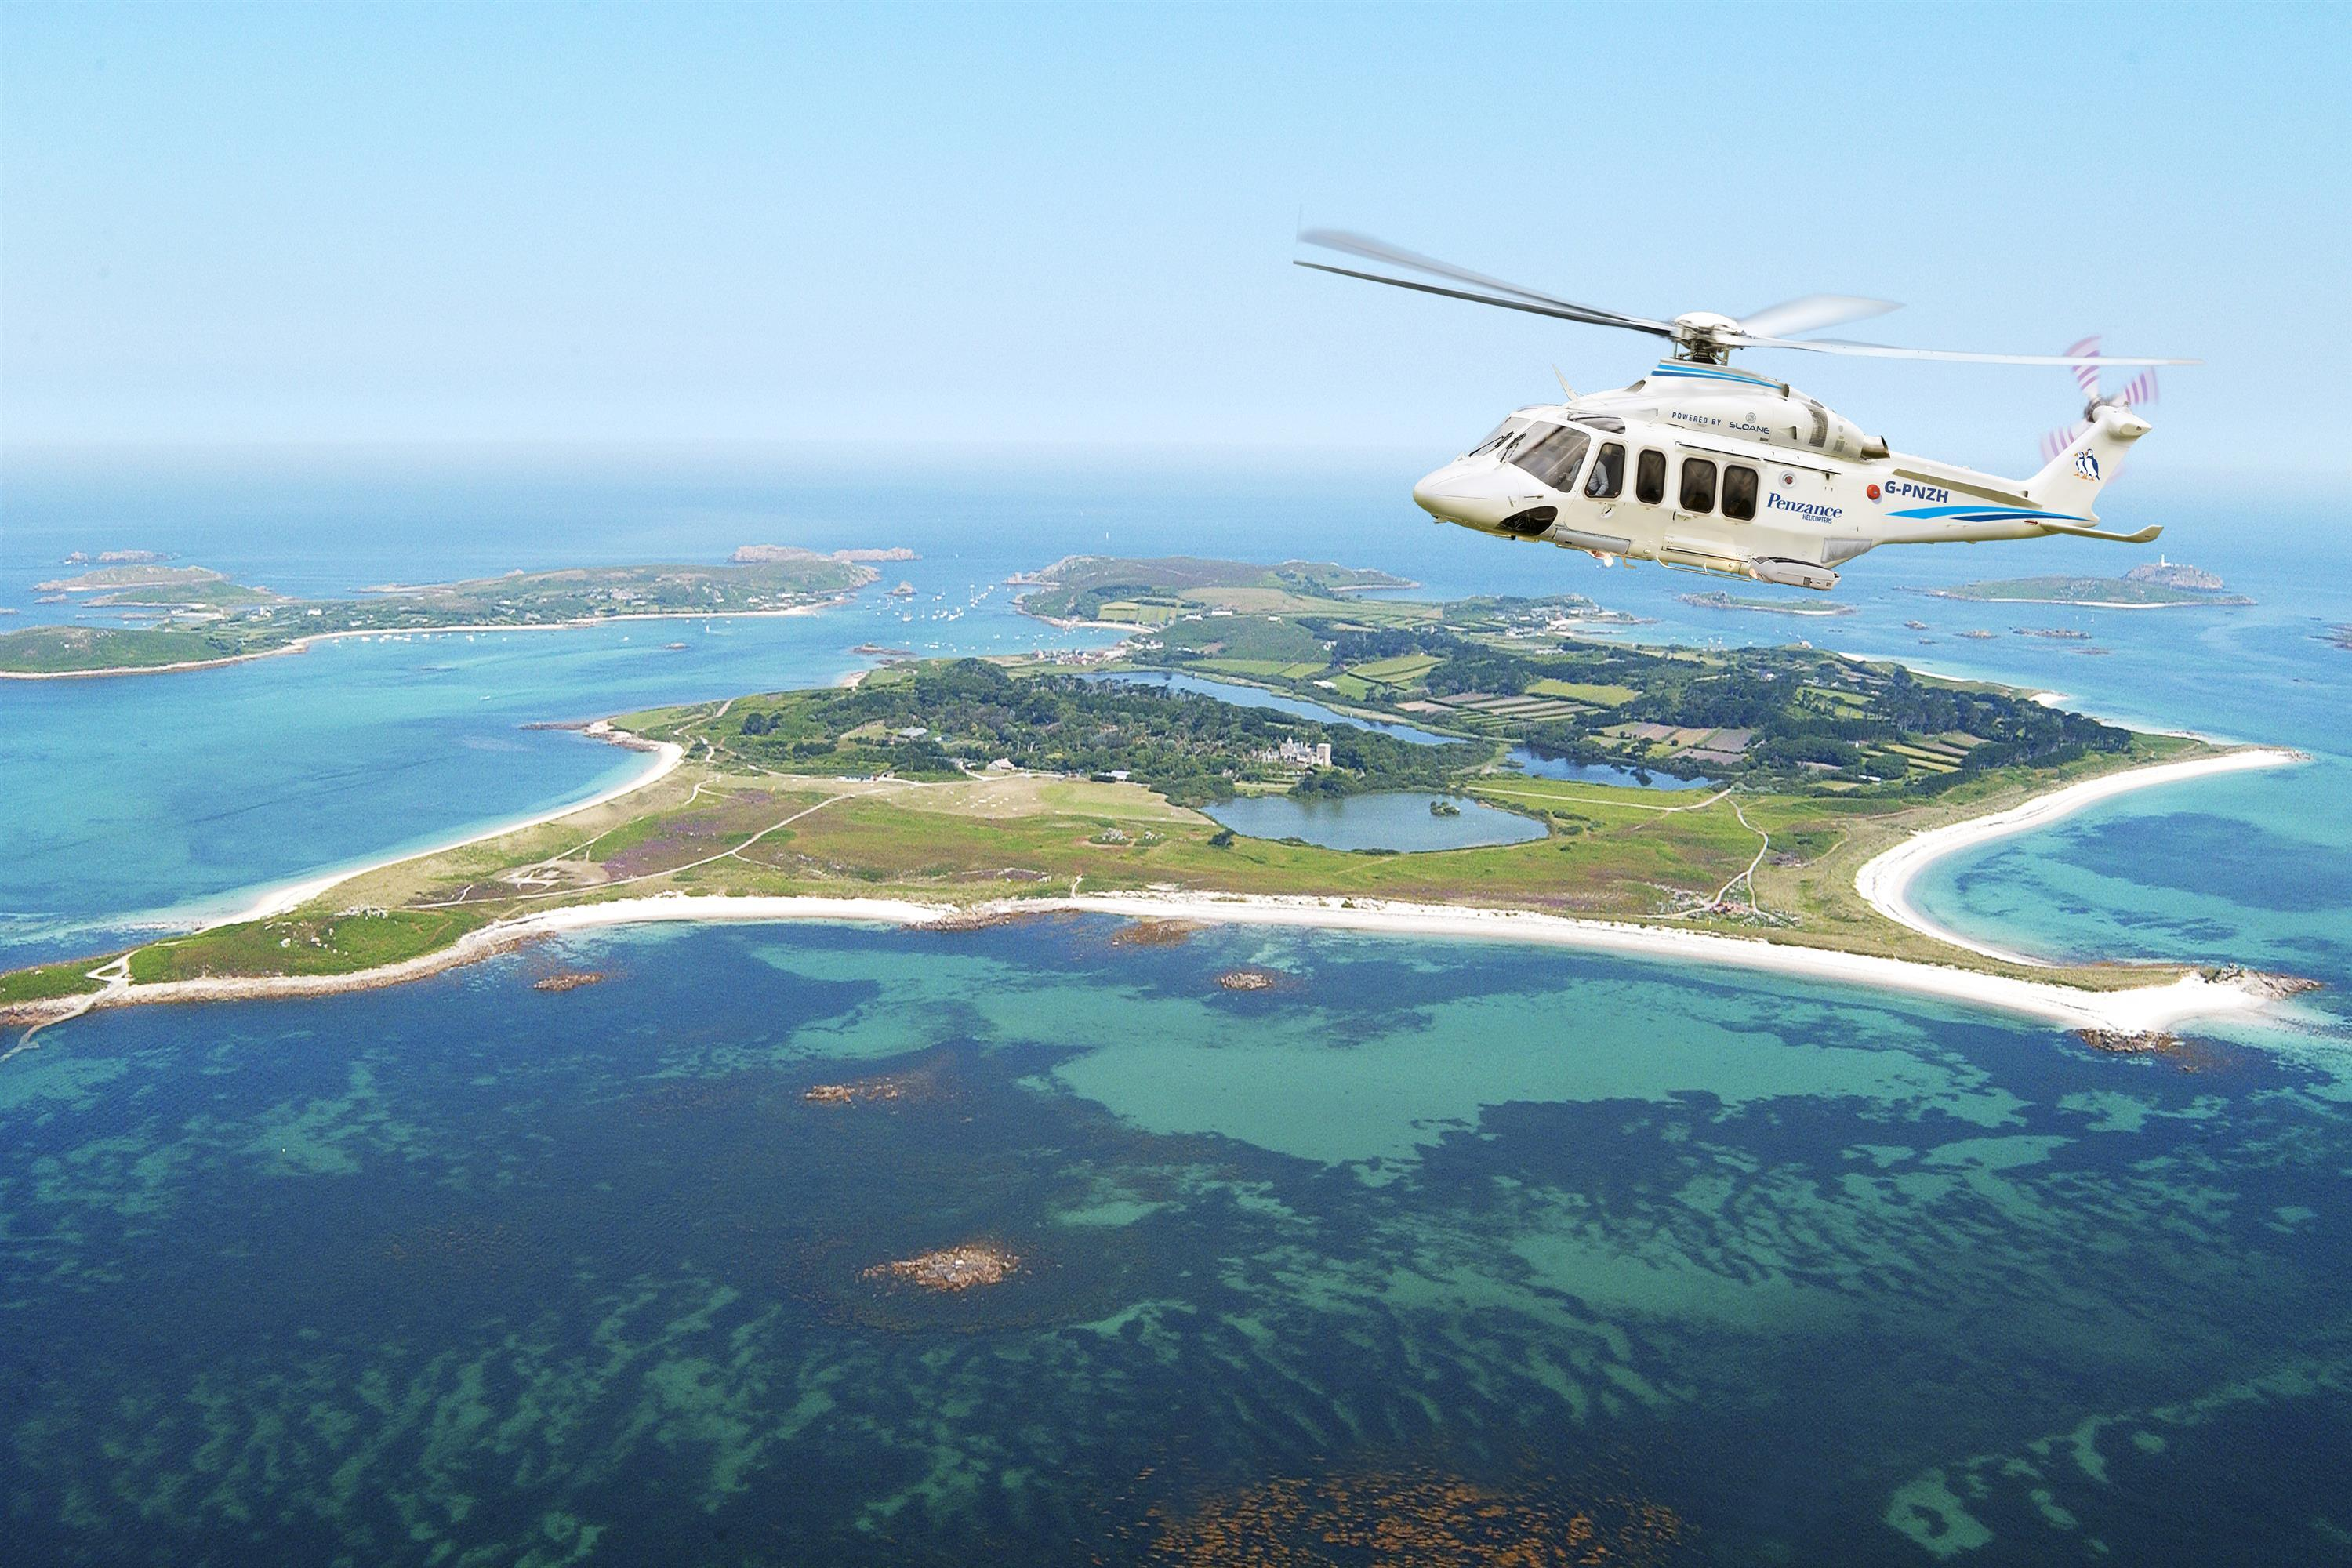 By Helicopter - Direct to Tresco